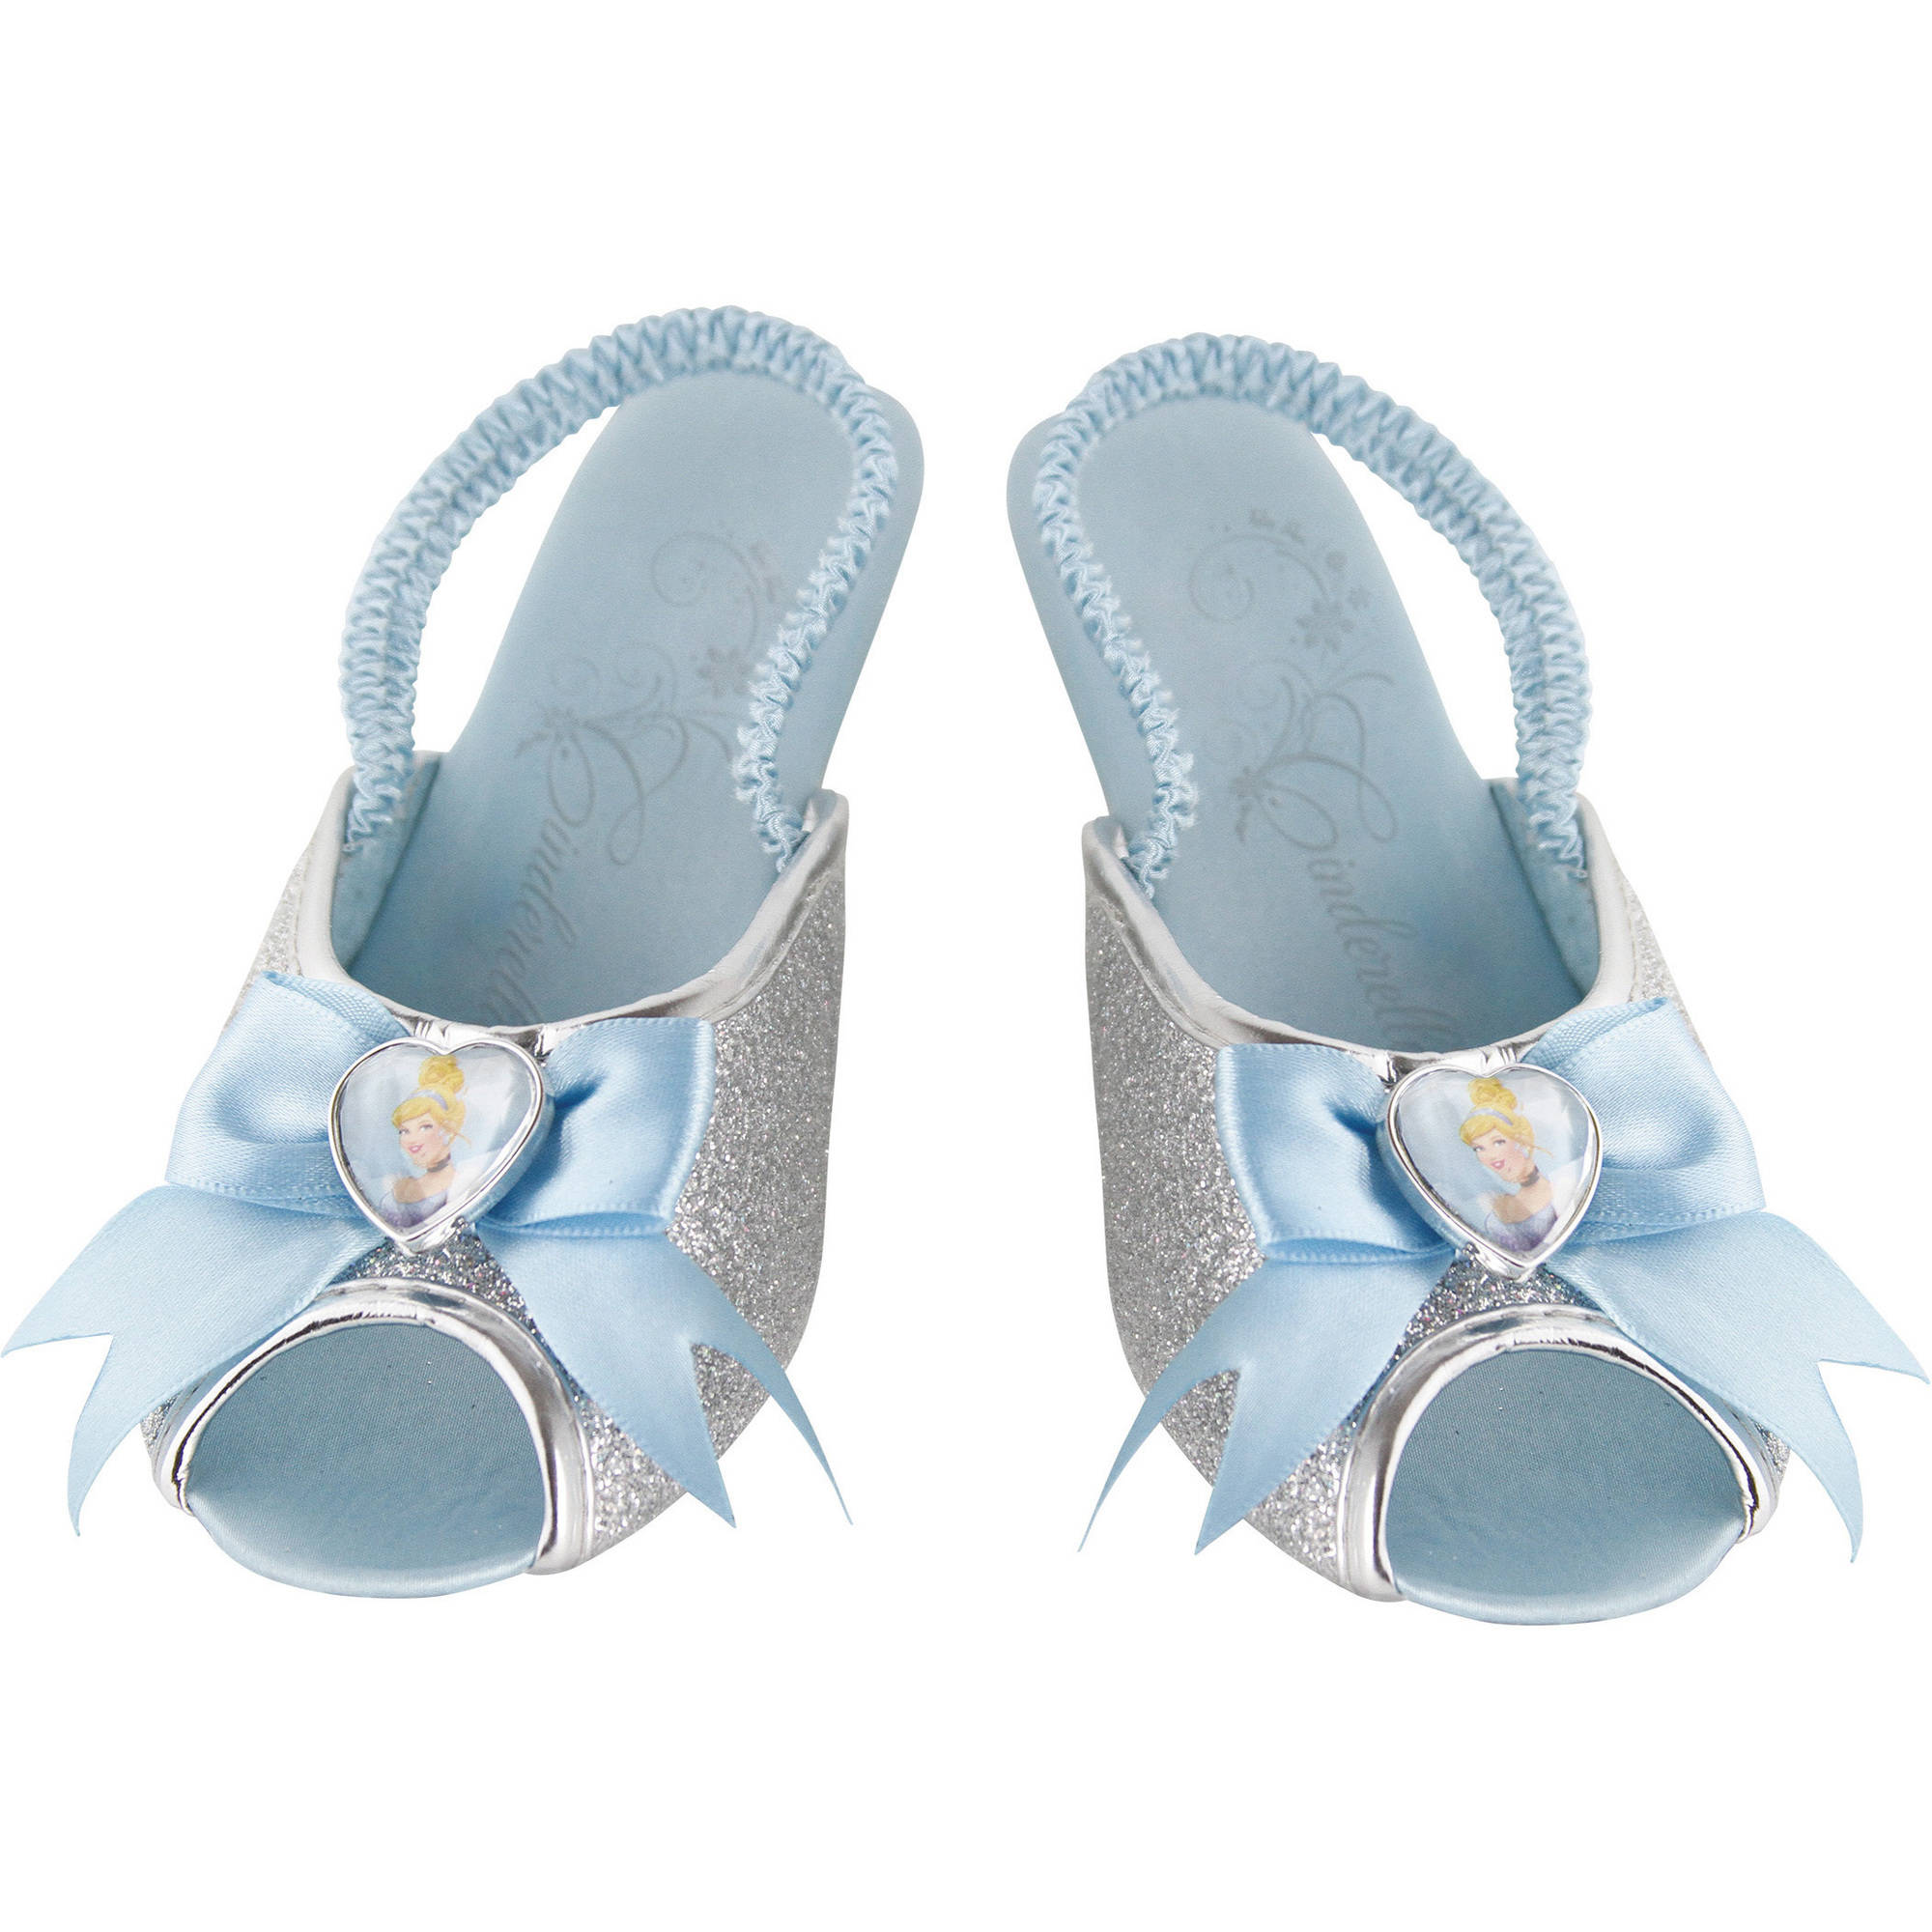 Disney Cinderella Child Shoes Halloween Costume Accessory